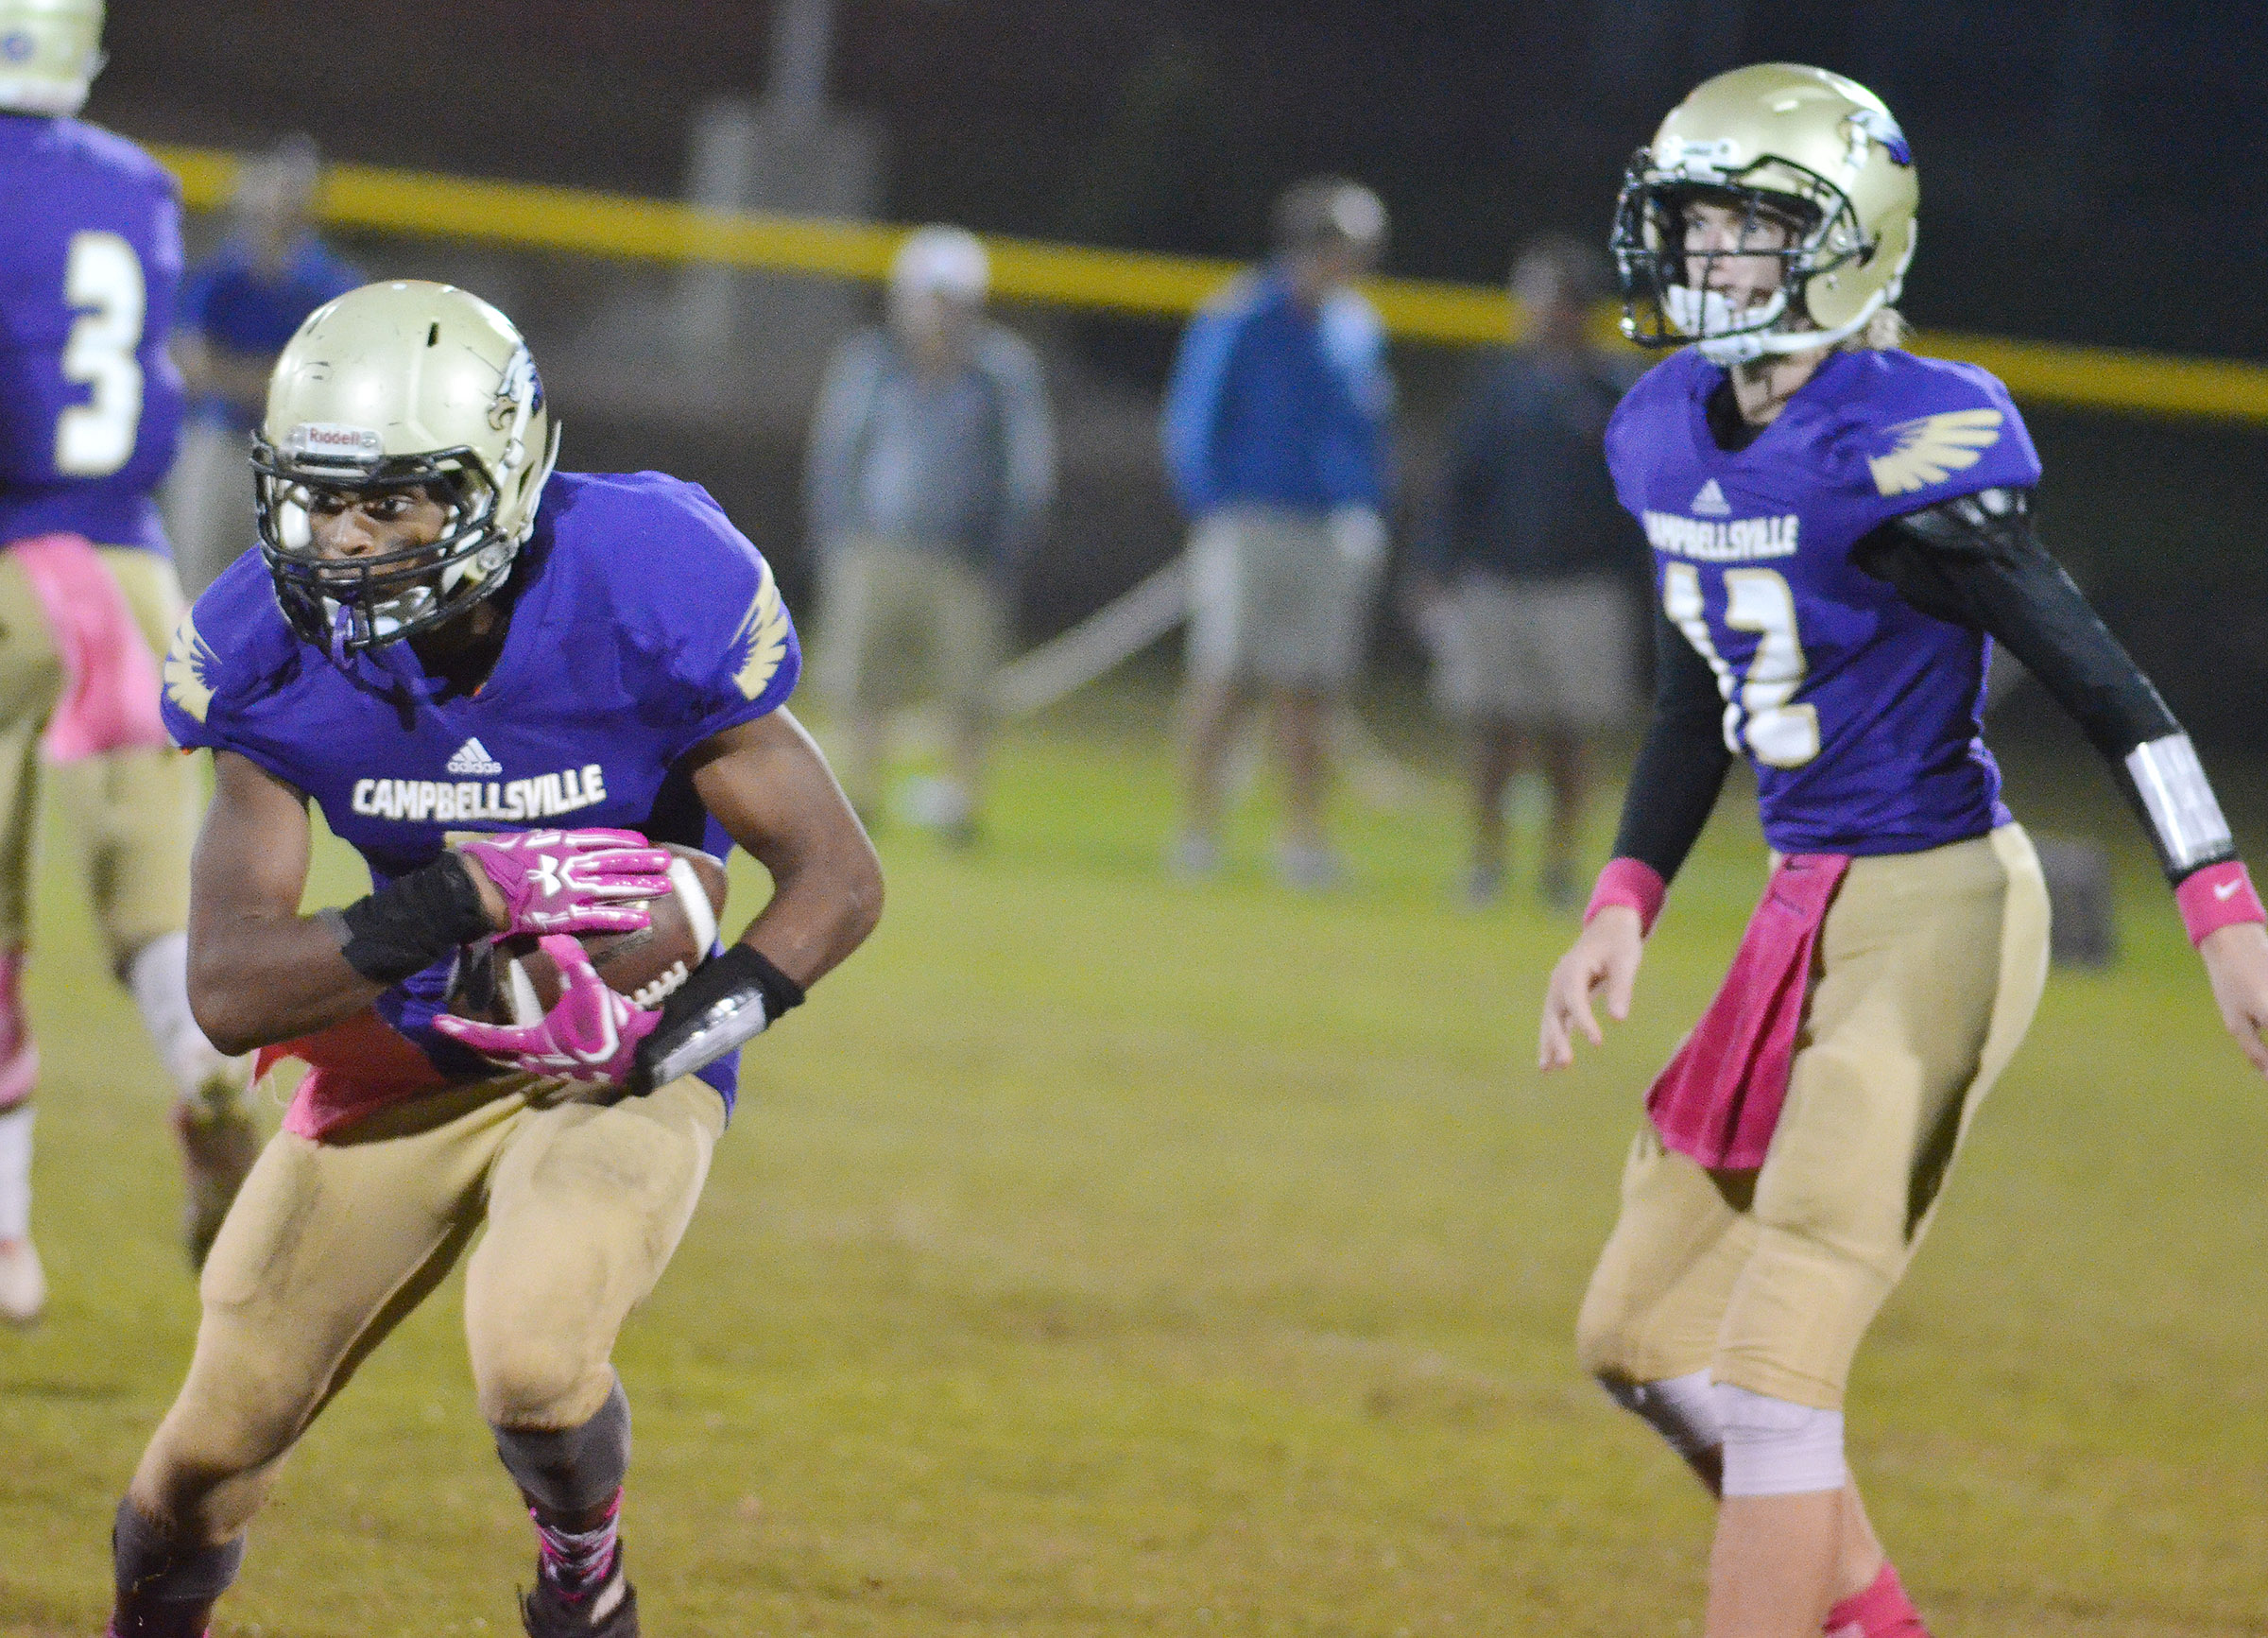 CHS senior Devonte Cubit runs the ball, after getting the pass from freshman Arren Hash.